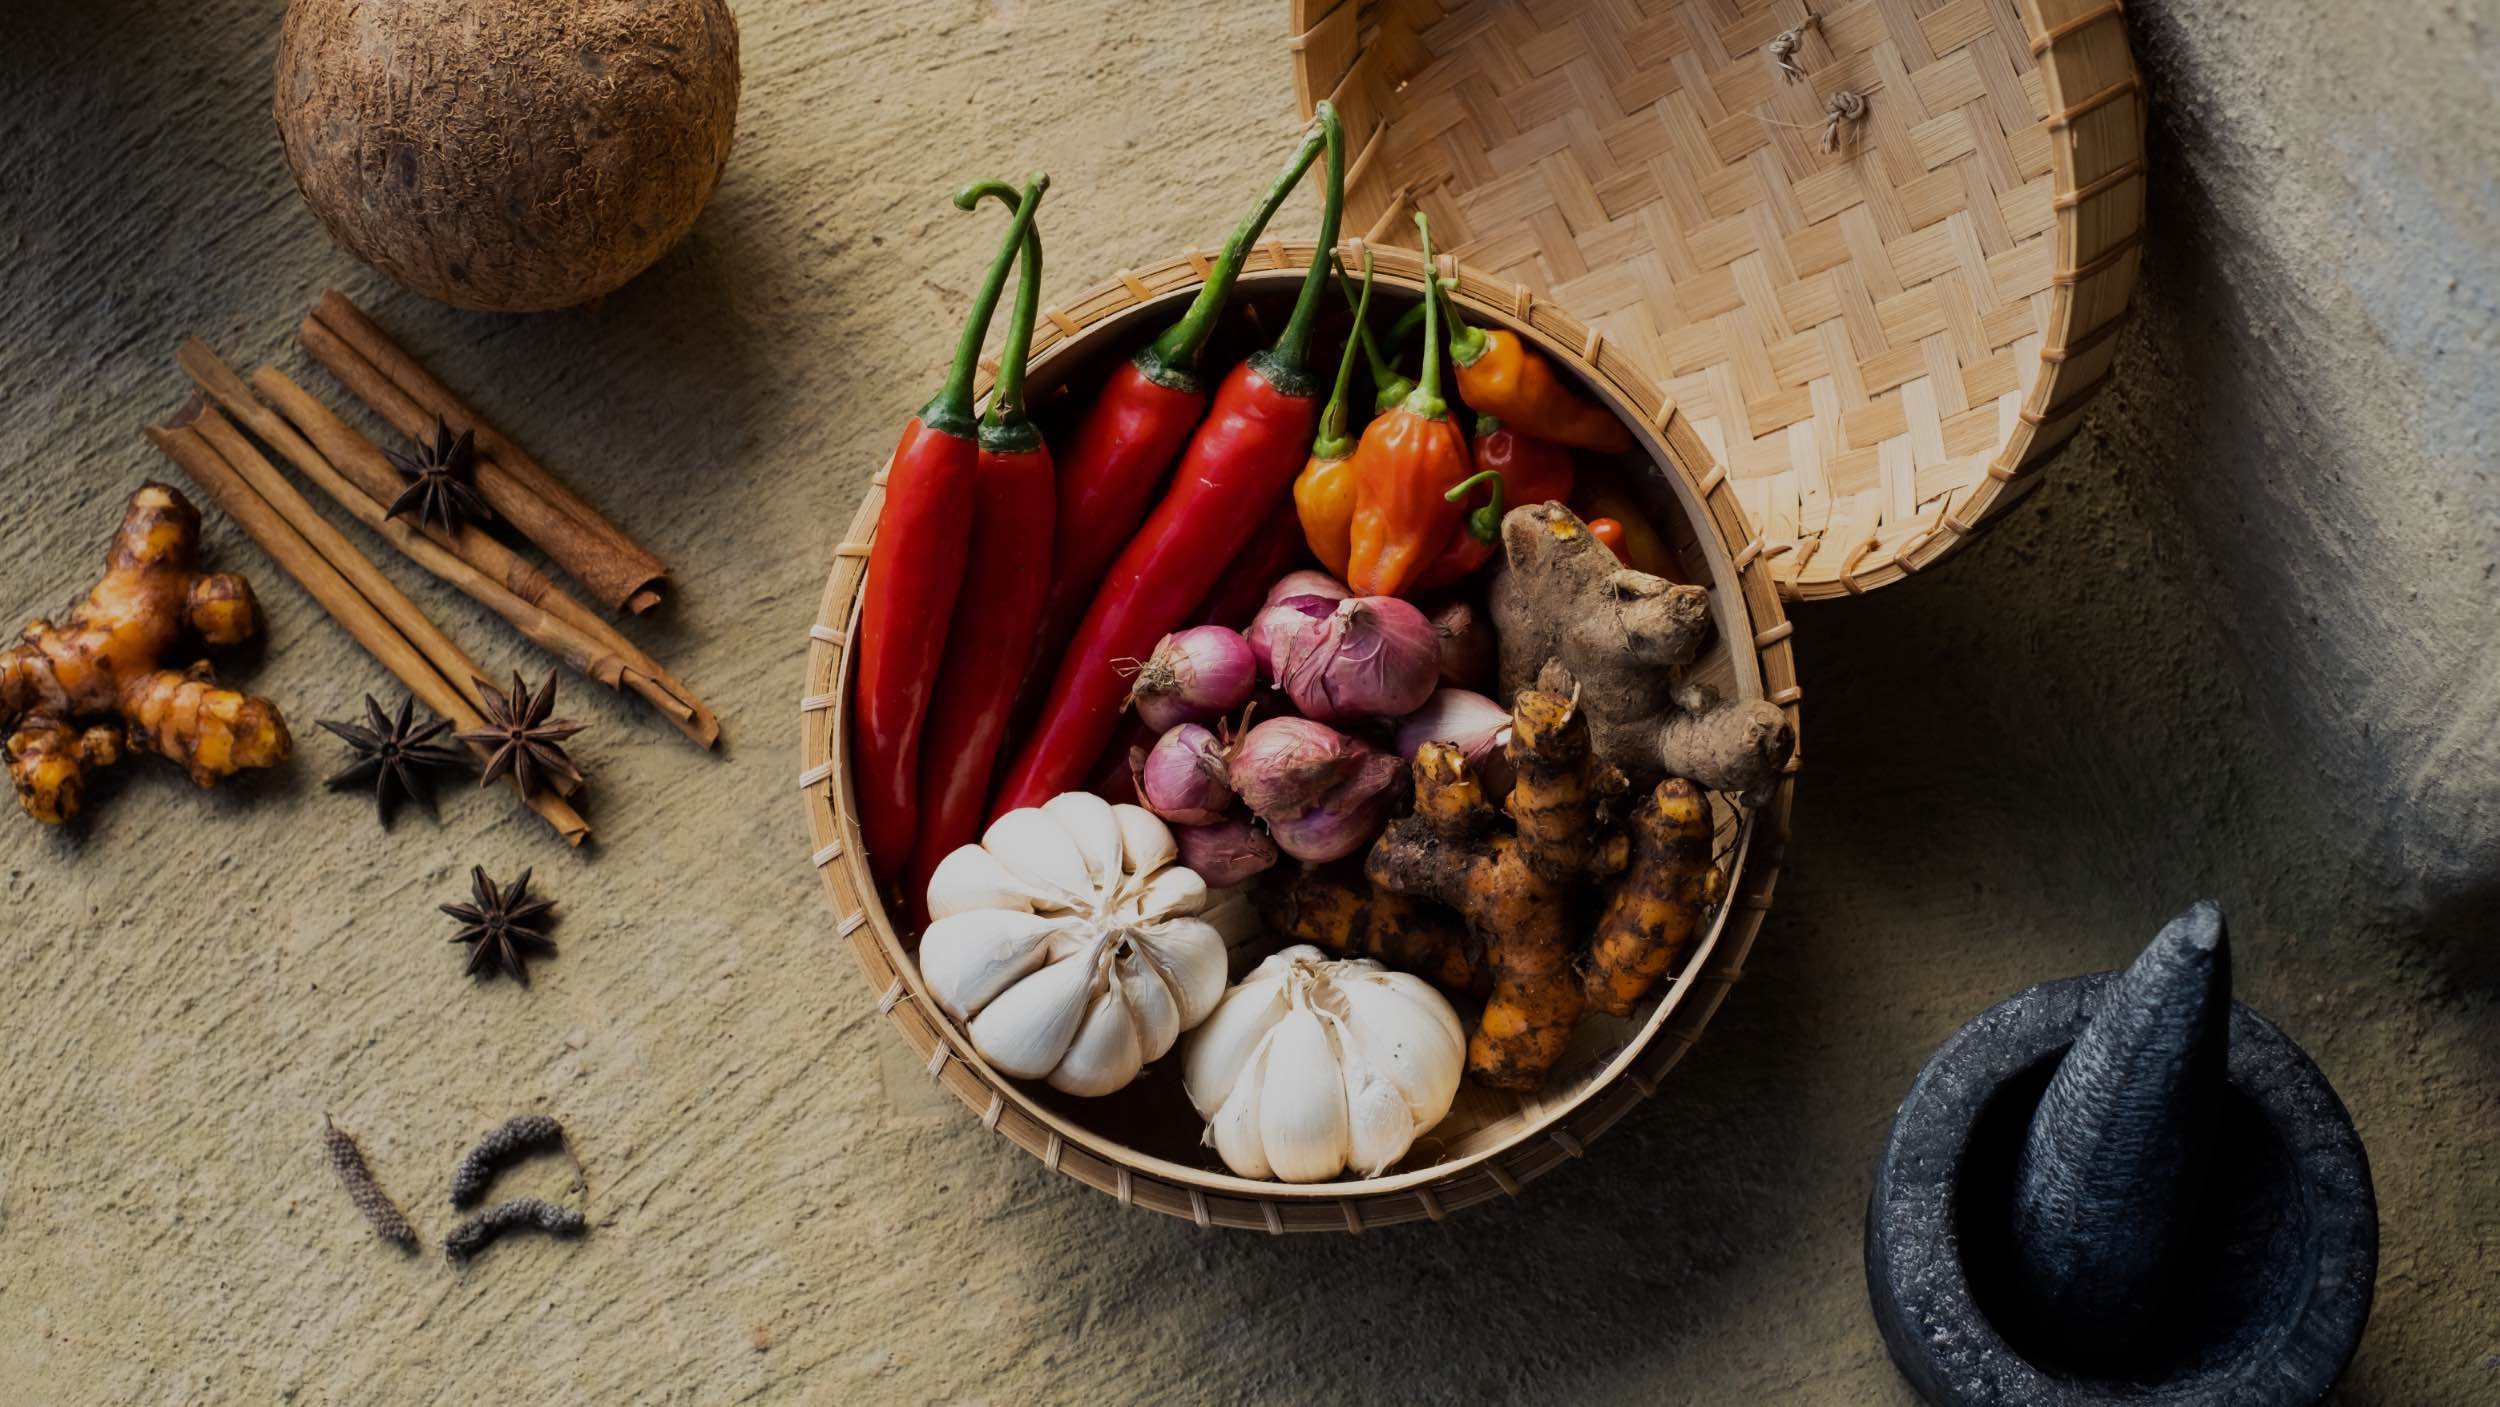 natural ingredients in wooden bowl